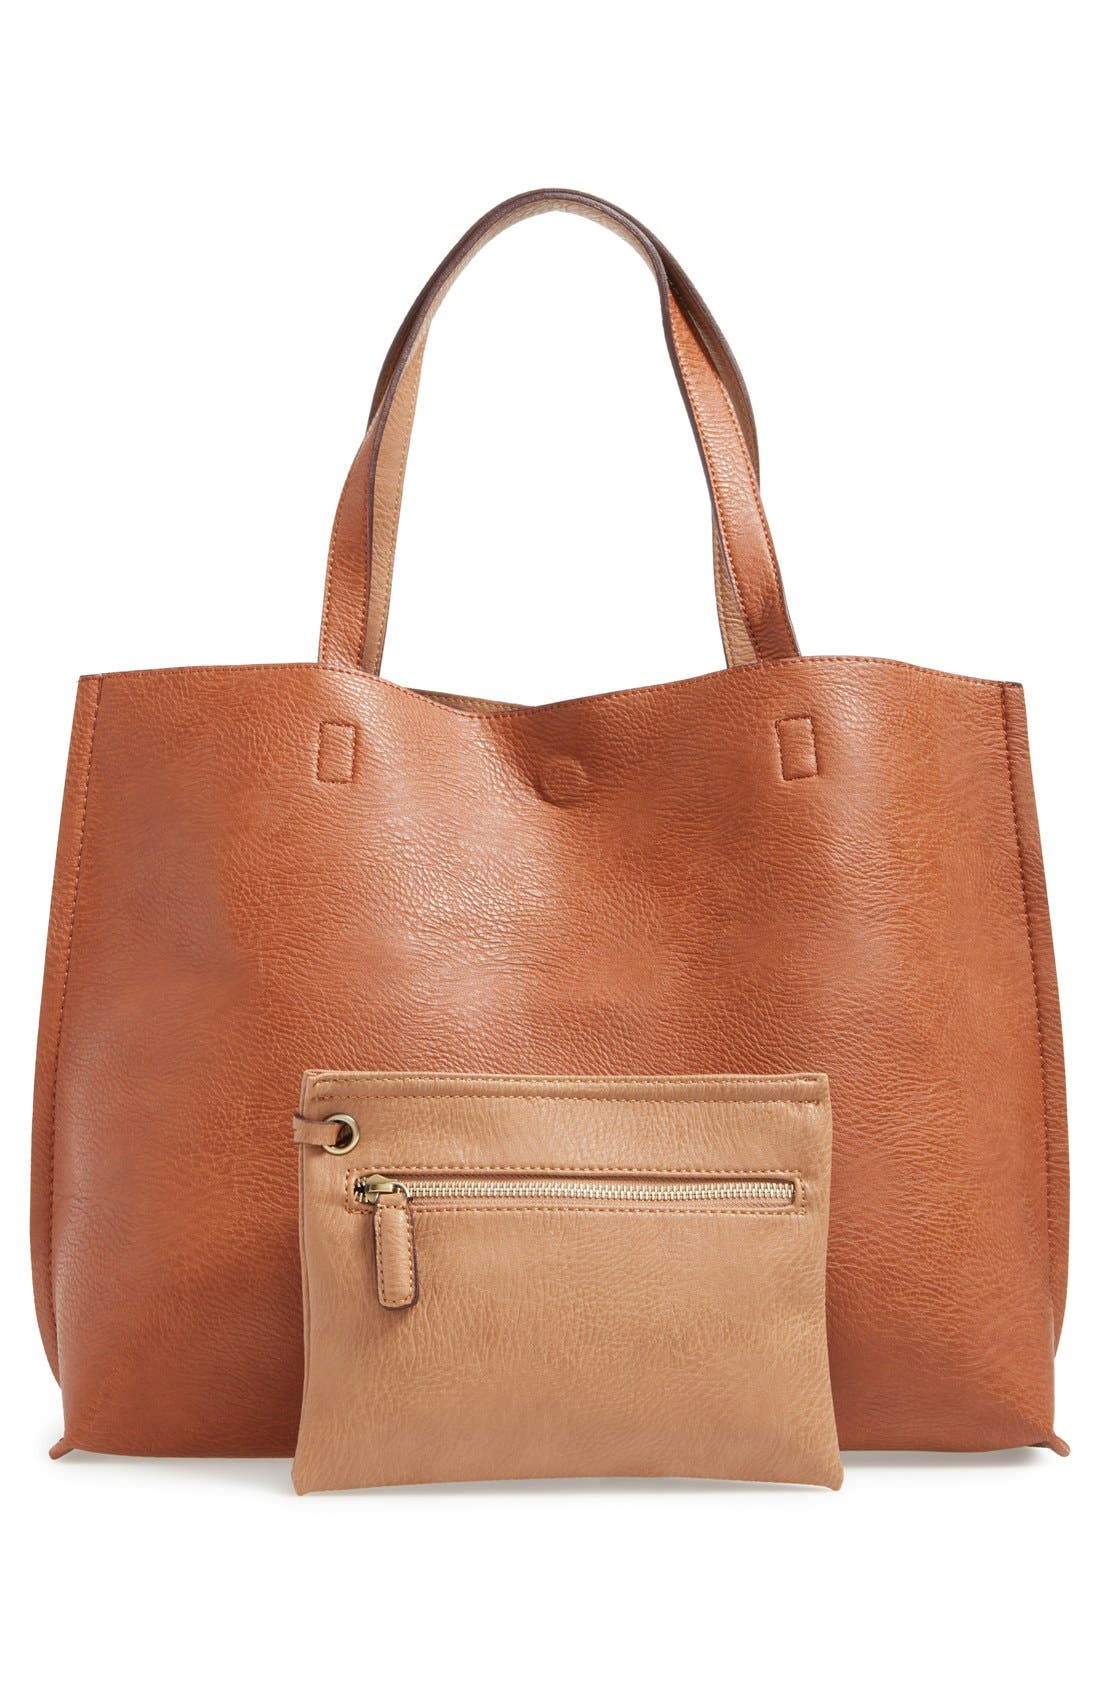 STREET LEVEL,                             Reversible Faux Leather Tote & Wristlet,                             Main thumbnail 1, color,                             COGNAC